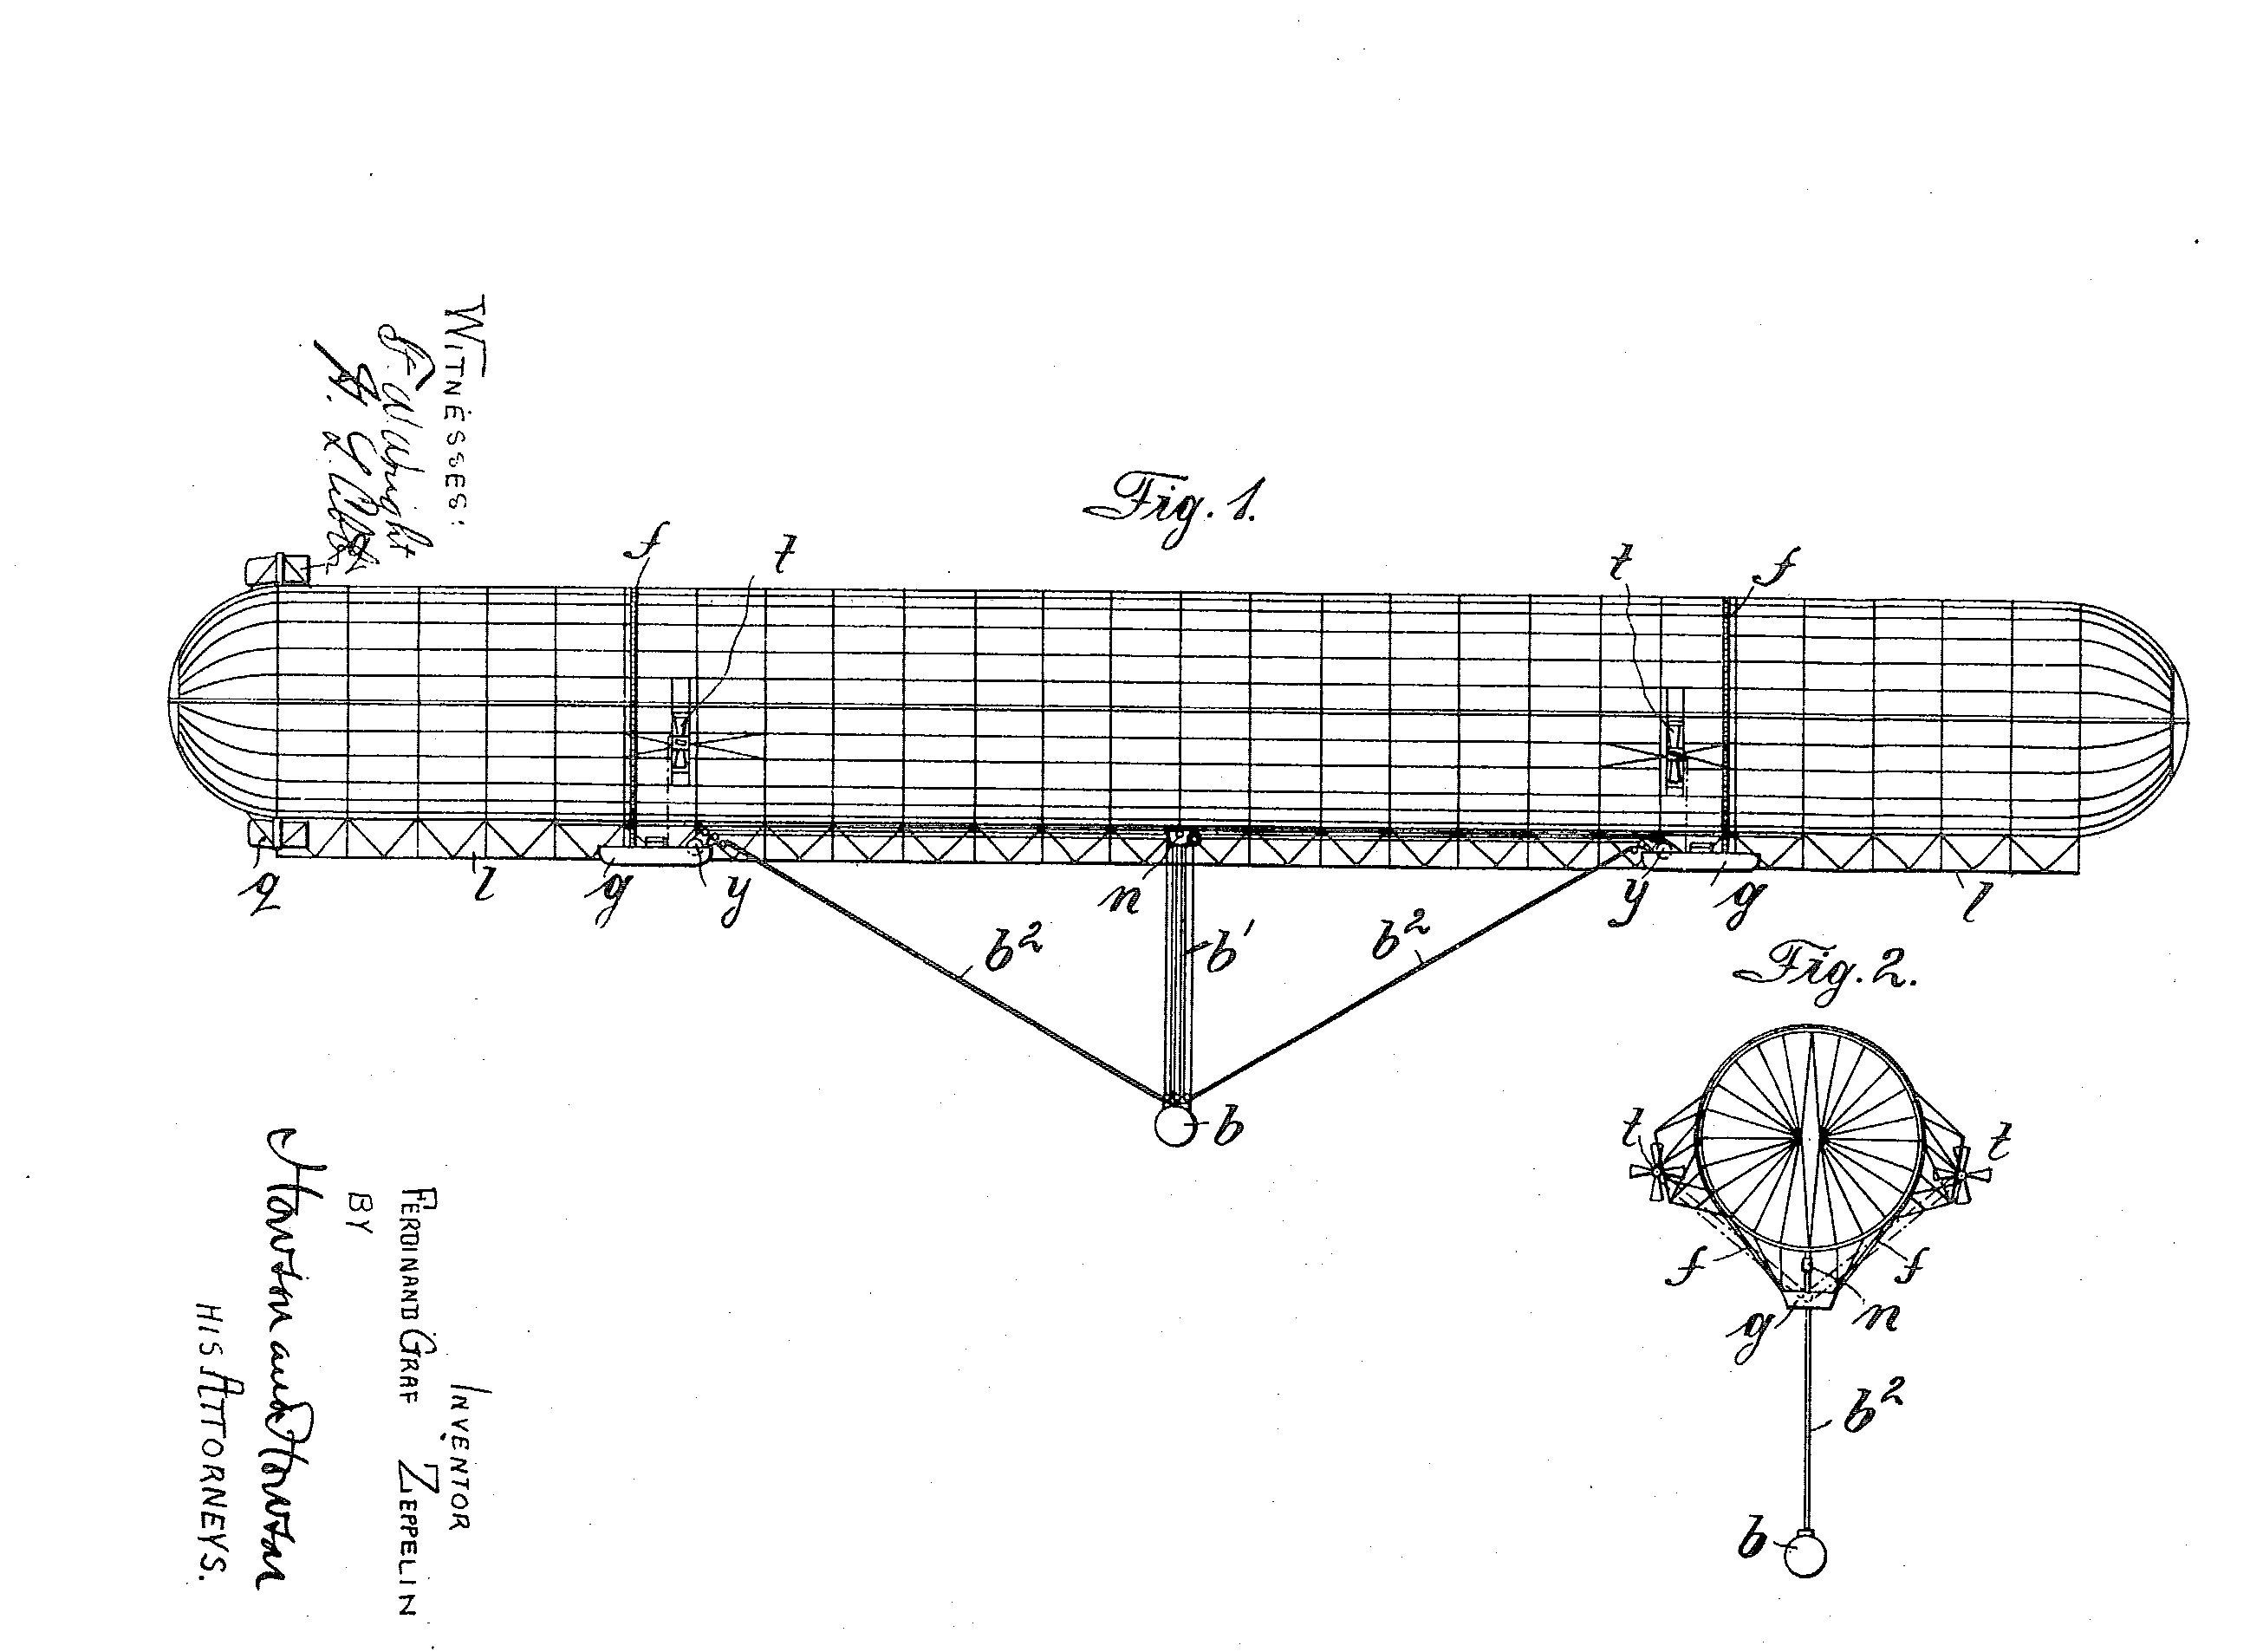 1899: Zeppelin patent issued